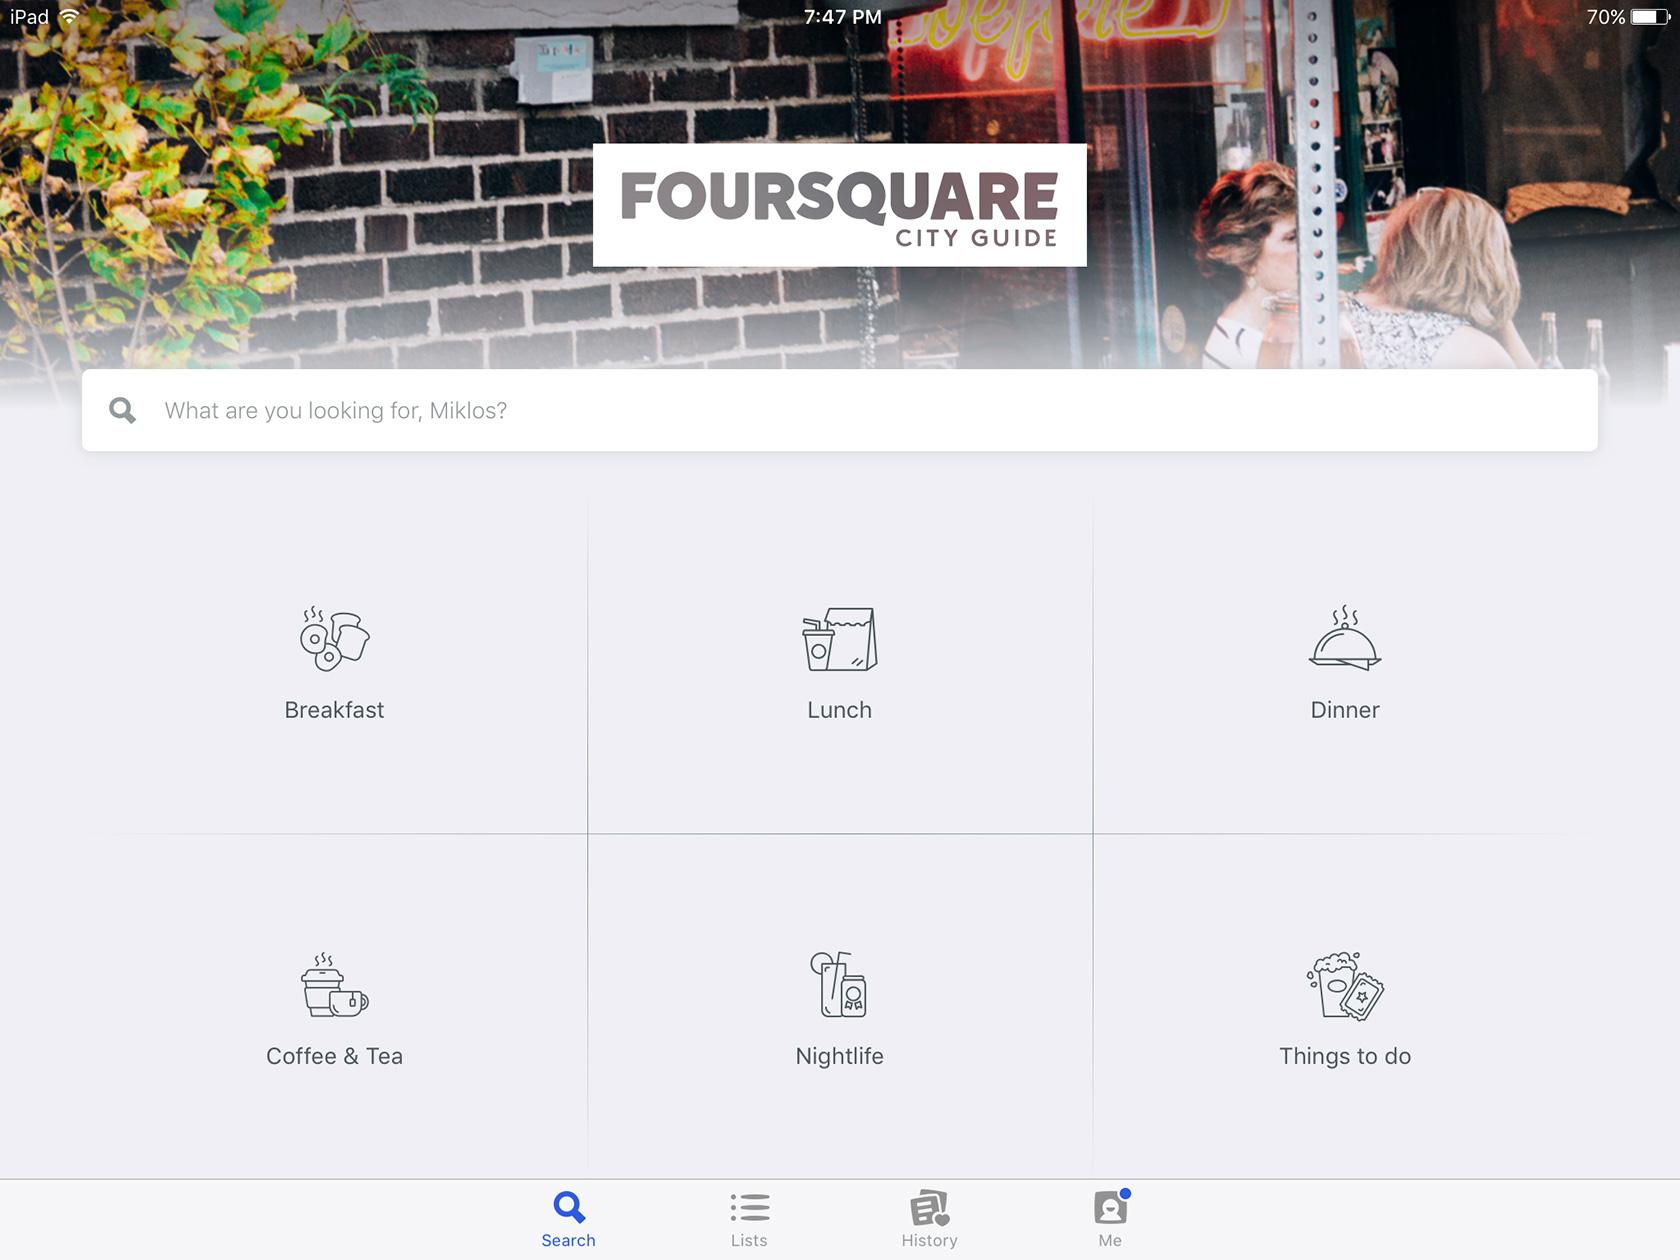 Foursquare uses design constraints to limit available interactions